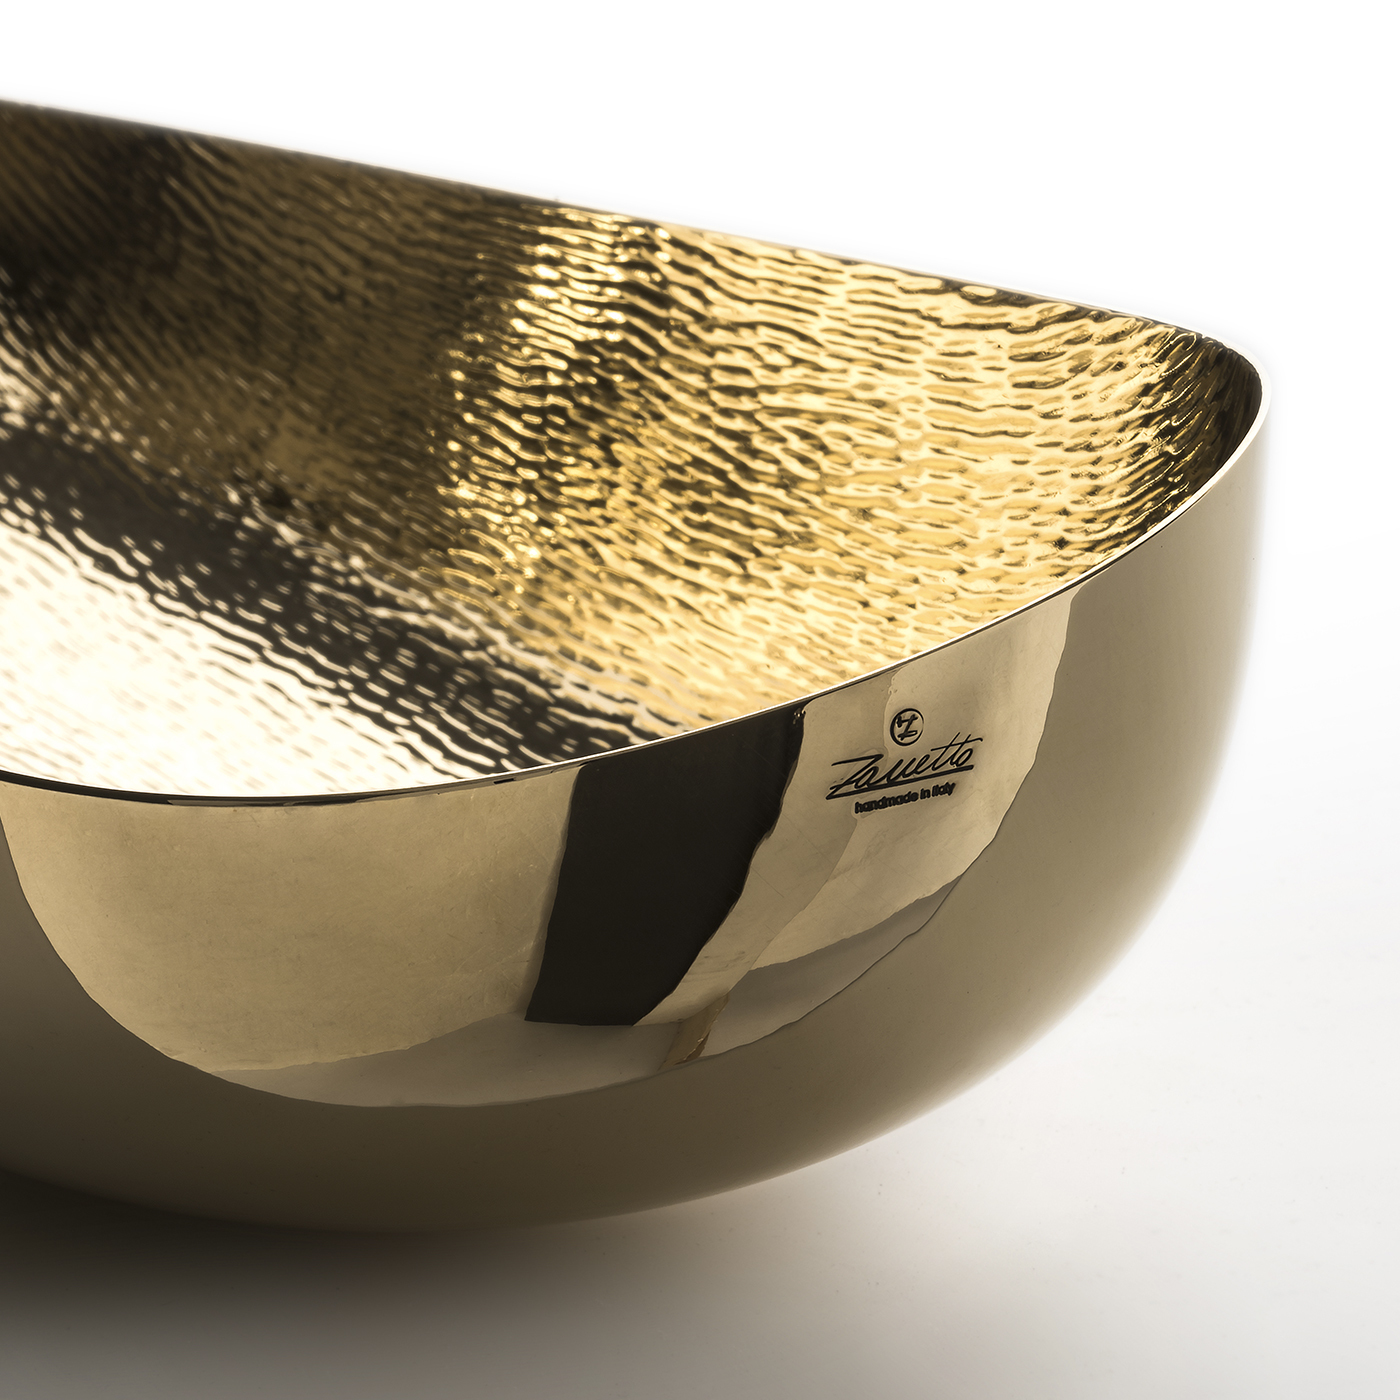 Illusioni Bowl - The organic look and feel of this bowl make it a special piece to display in any room in the house to make a sophisticated and elegant statement. Made entirely of brass with a beeswax coating, its elongated, sinuous shape and its generous size give this object of functional decor a versatile quality. Its smooth exterior surface strikingly contrasts with the lightly textured interior for a modern final effect.